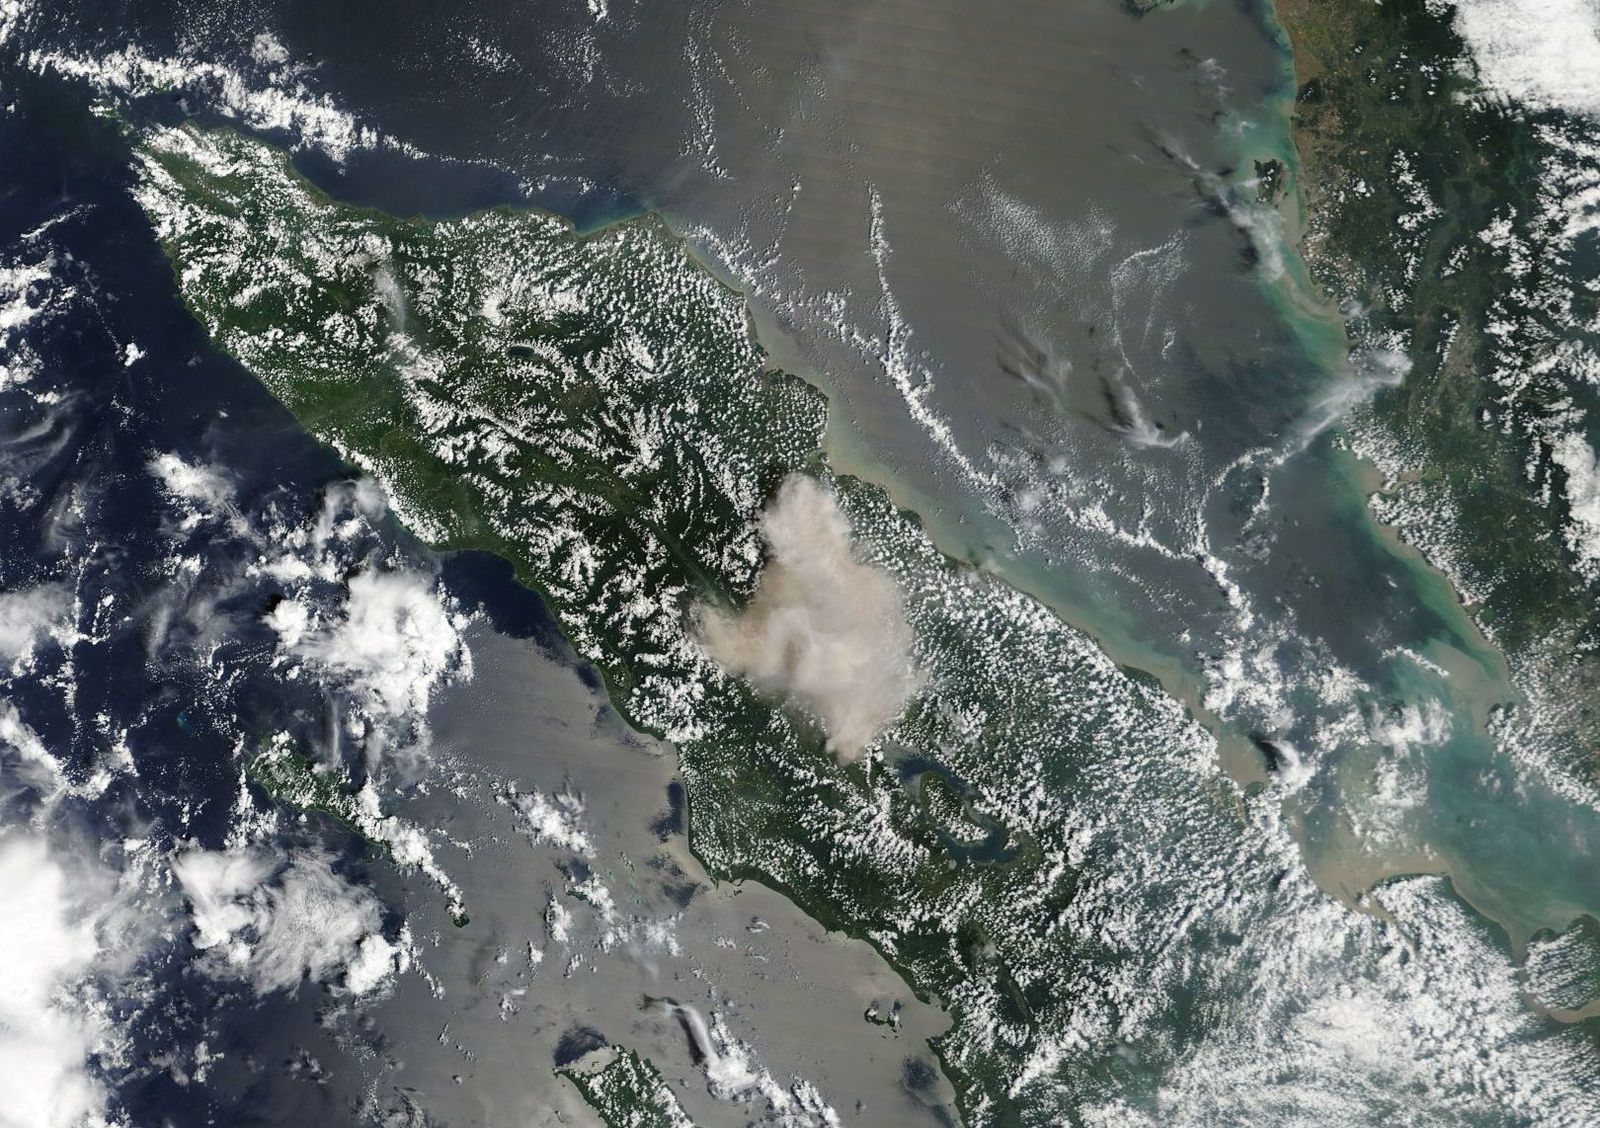 Sinabung eruption of 19.02.2018 from space - Nasa Terra Modis